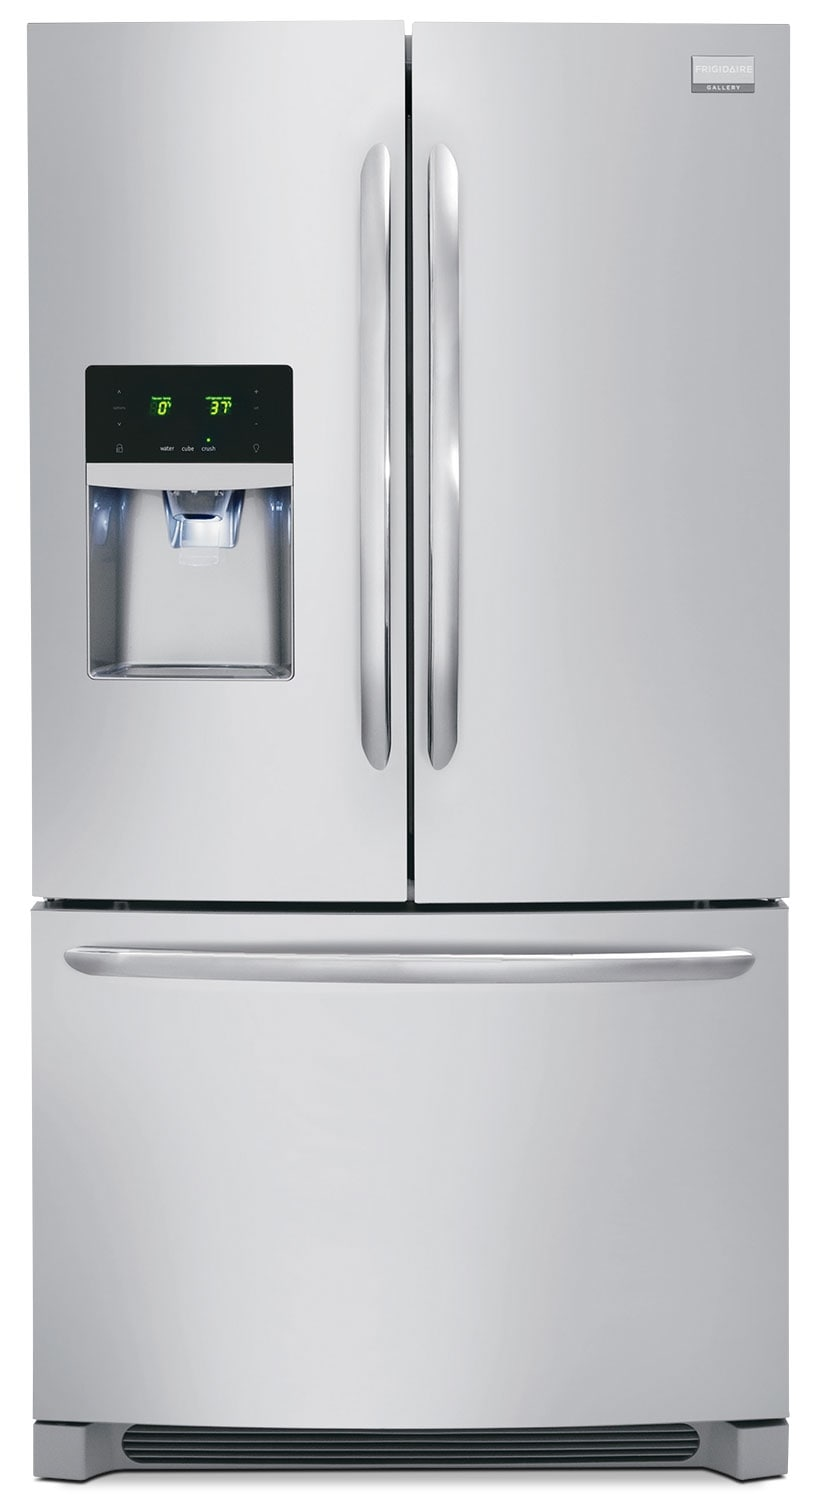 Refrigerators and Freezers - Frigidaire Gallery 28 Cu. Ft. French Door Refrigerator - Stainless Steel